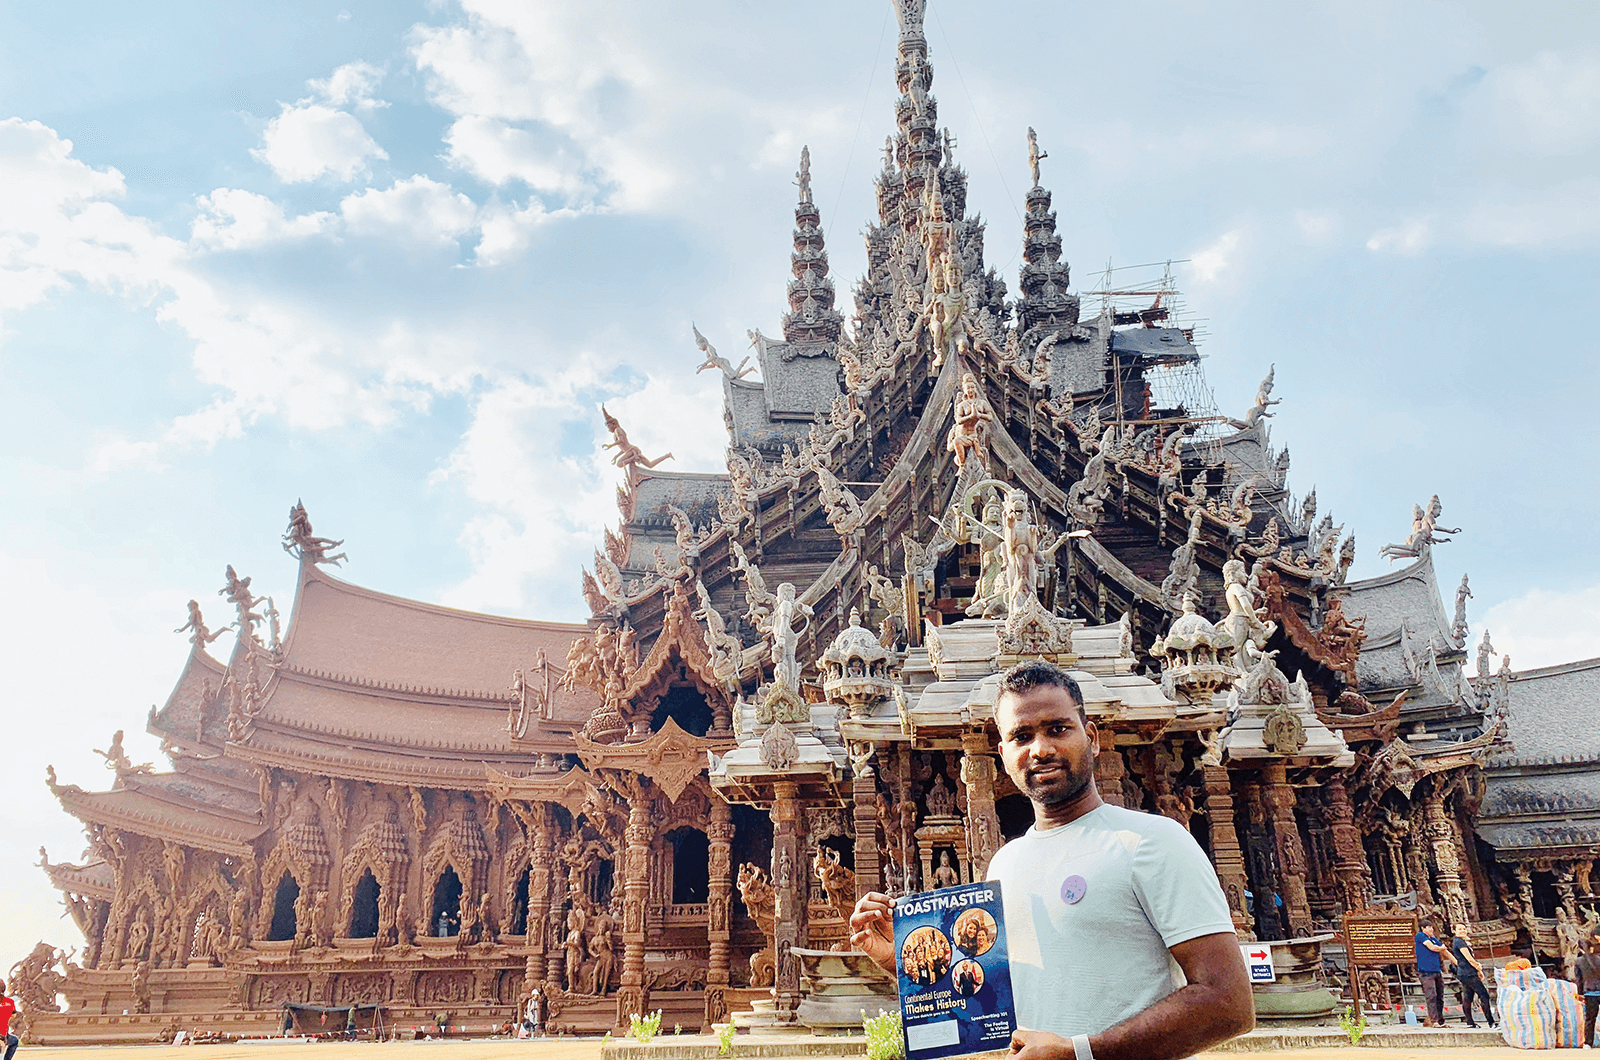 Vinay Darunam, of Englewood, Colorado, explores the architecture at the Sanctuary of Truth in Pattaya, Thailand.